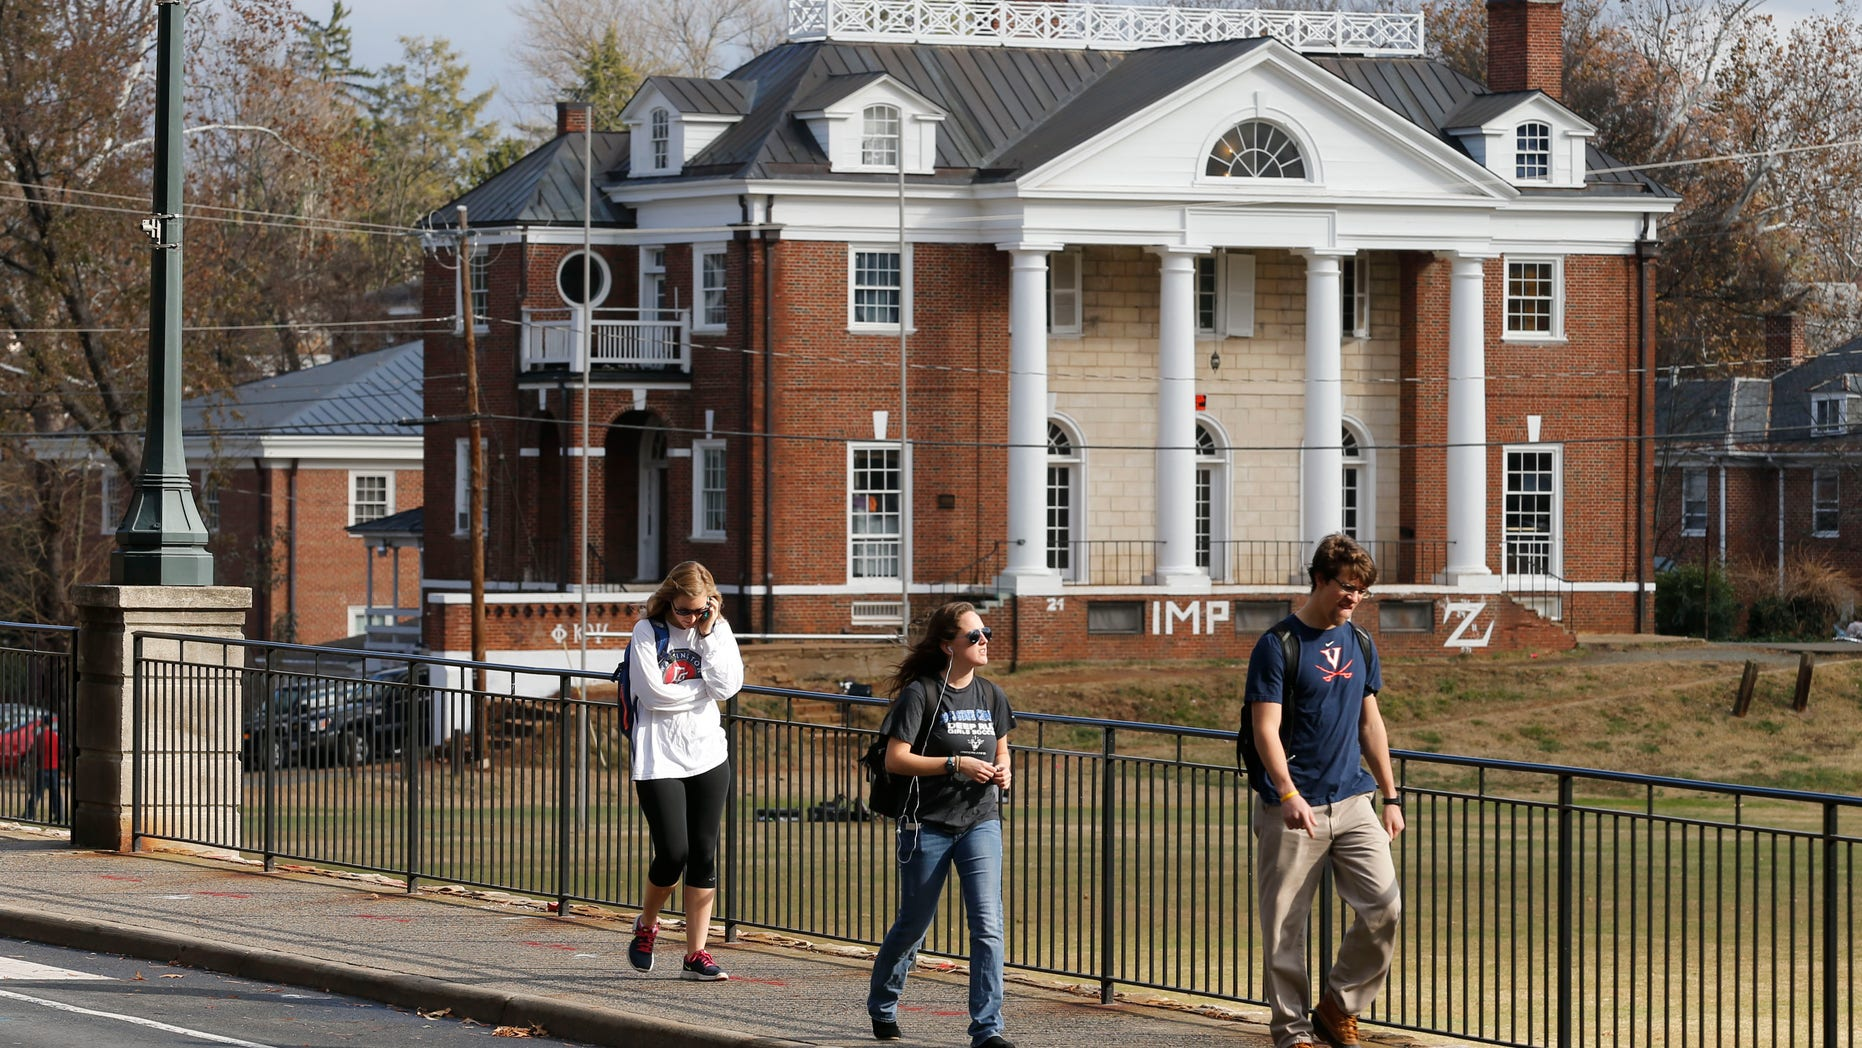 Nov. 24, 2014: University of Virginia students walk to campus past the Phi Kappa Psi fraternity house at the University of Virginia